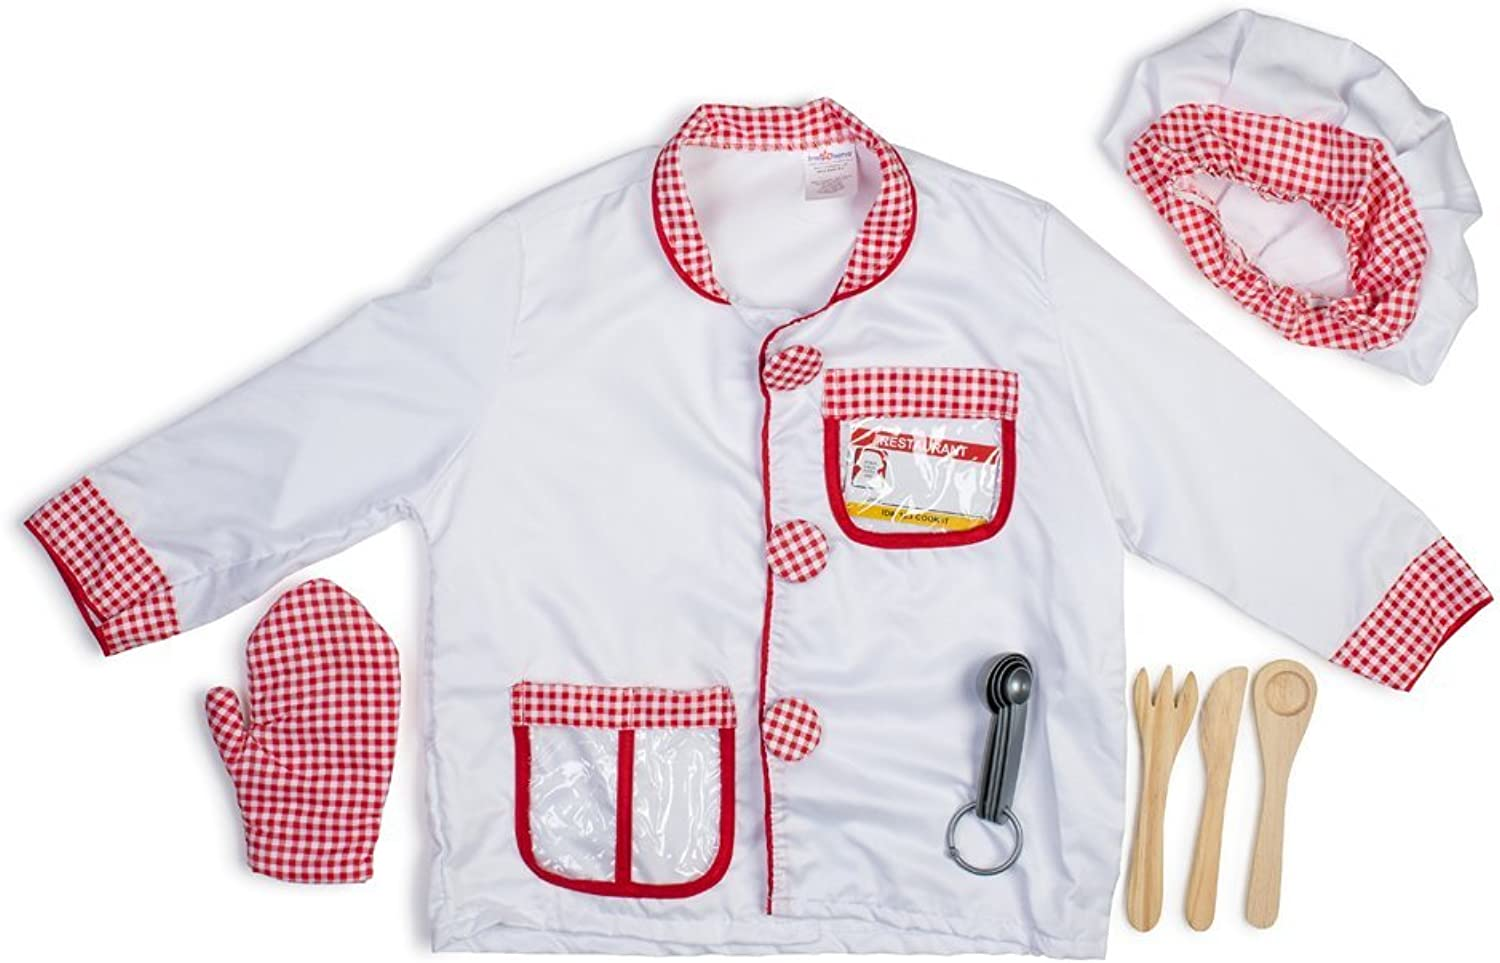 Chef Role Play Dress Up Set - Ages 3-7